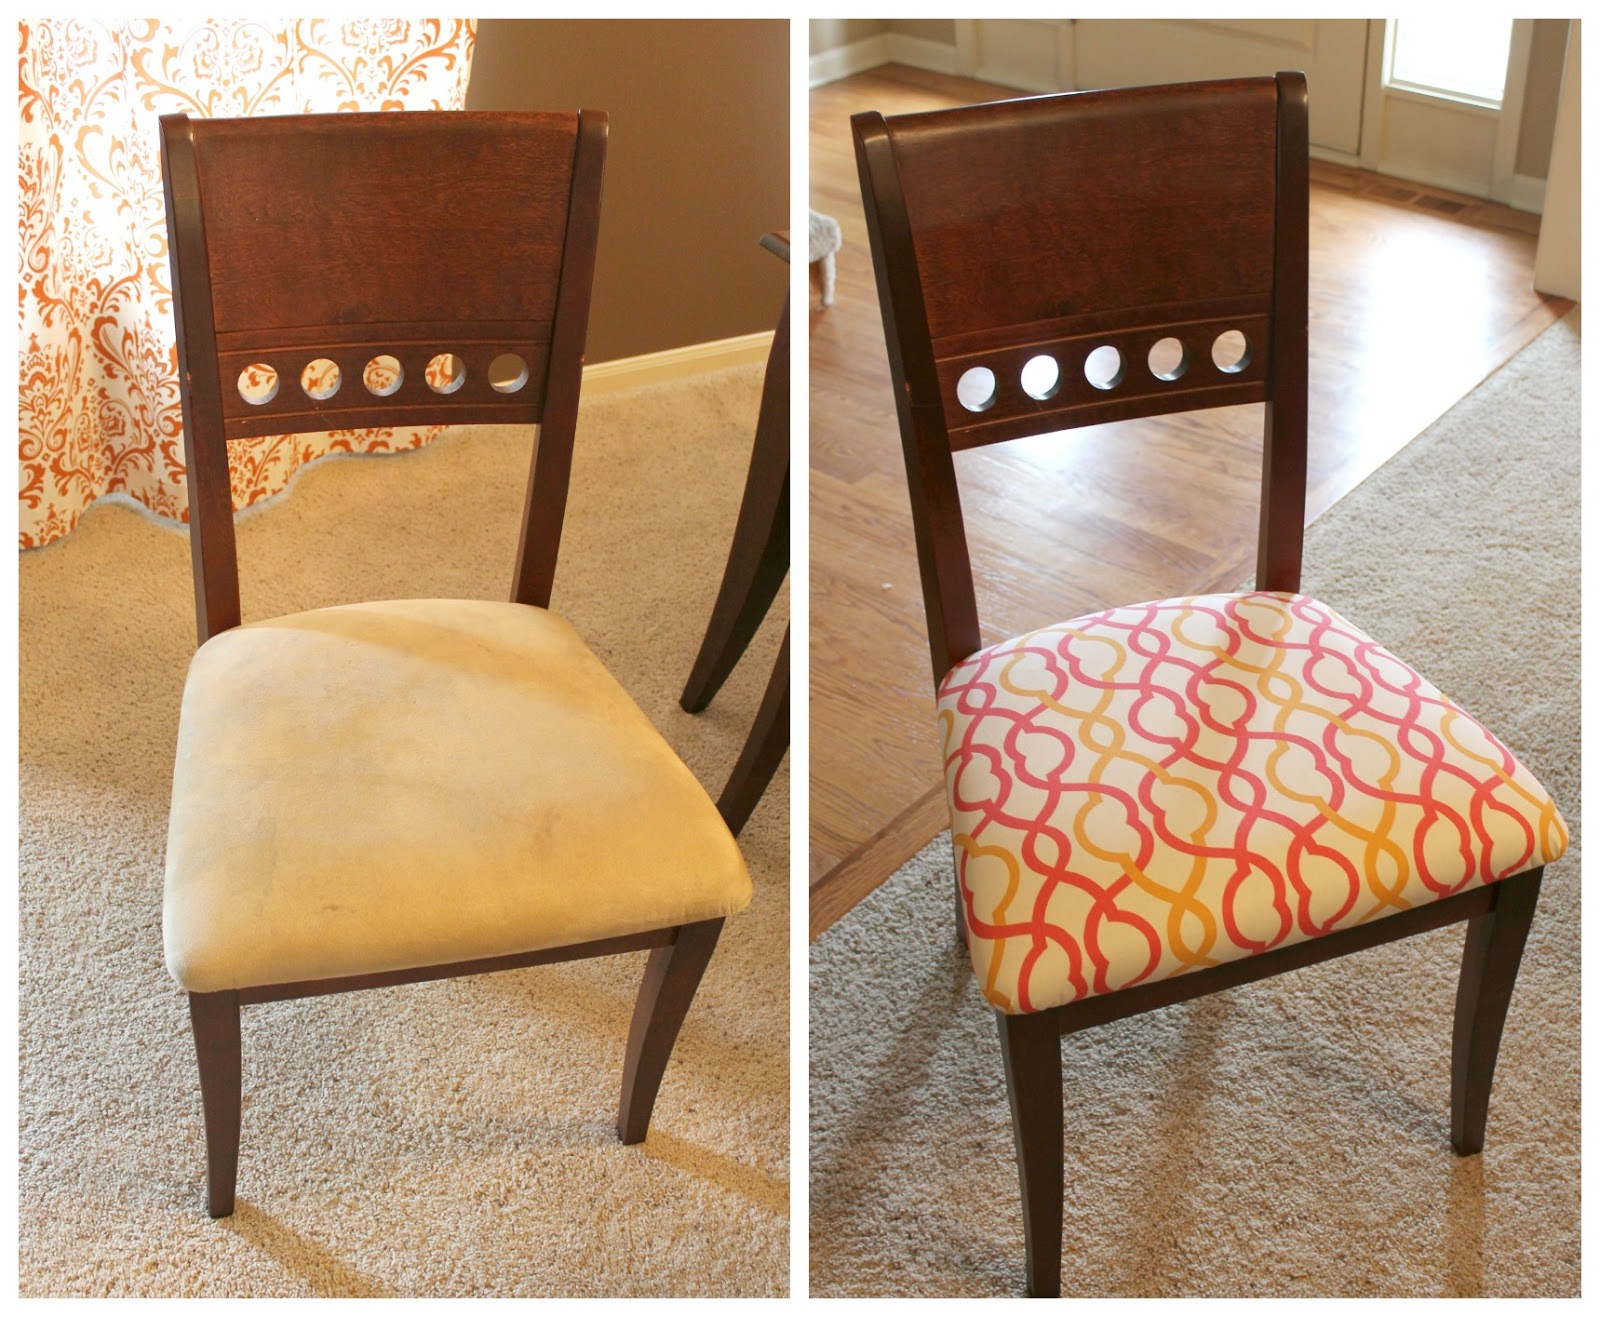 Reupholstering Dining Room Chairs Large And Beautiful Photos